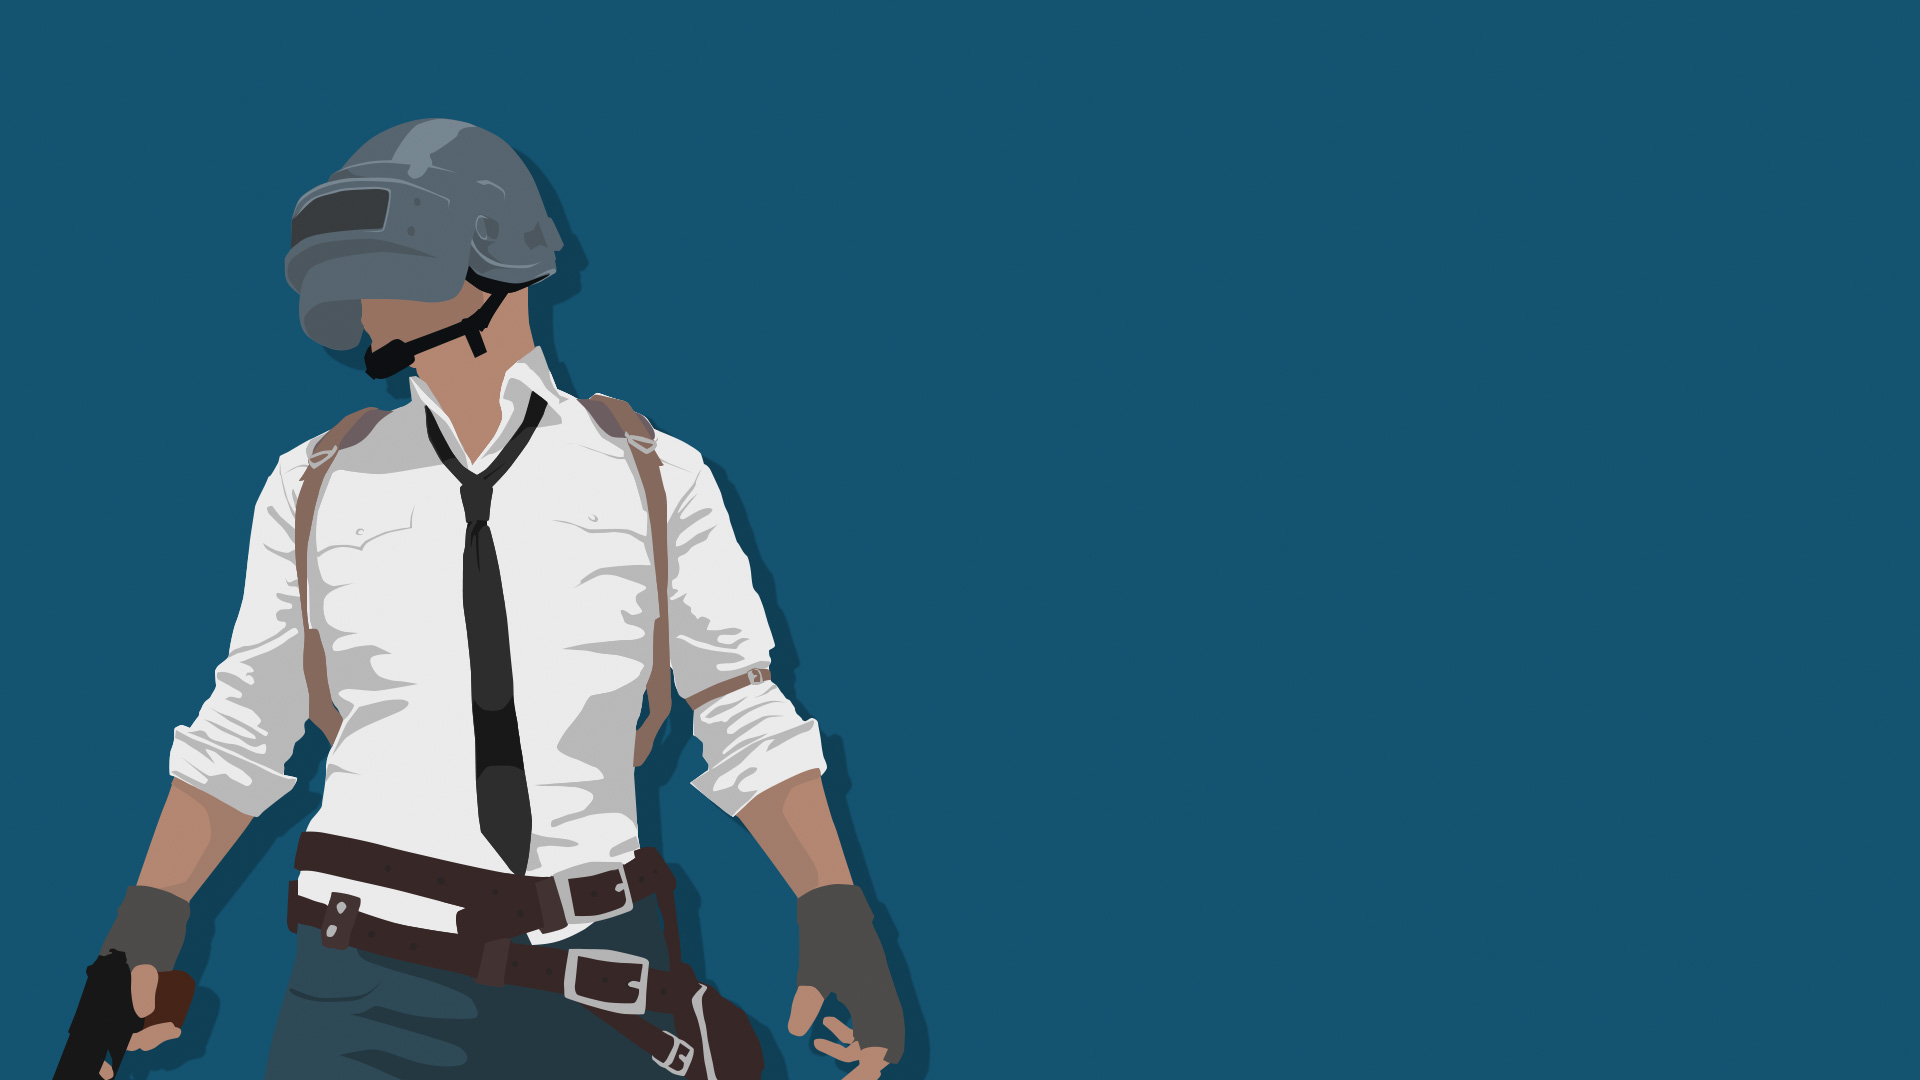 3840x2160 Pubg Game Helmet Guy 4k 4k Hd 4k Wallpapers: Playerunknowns Battlegrounds Minimalism, HD Games, 4k